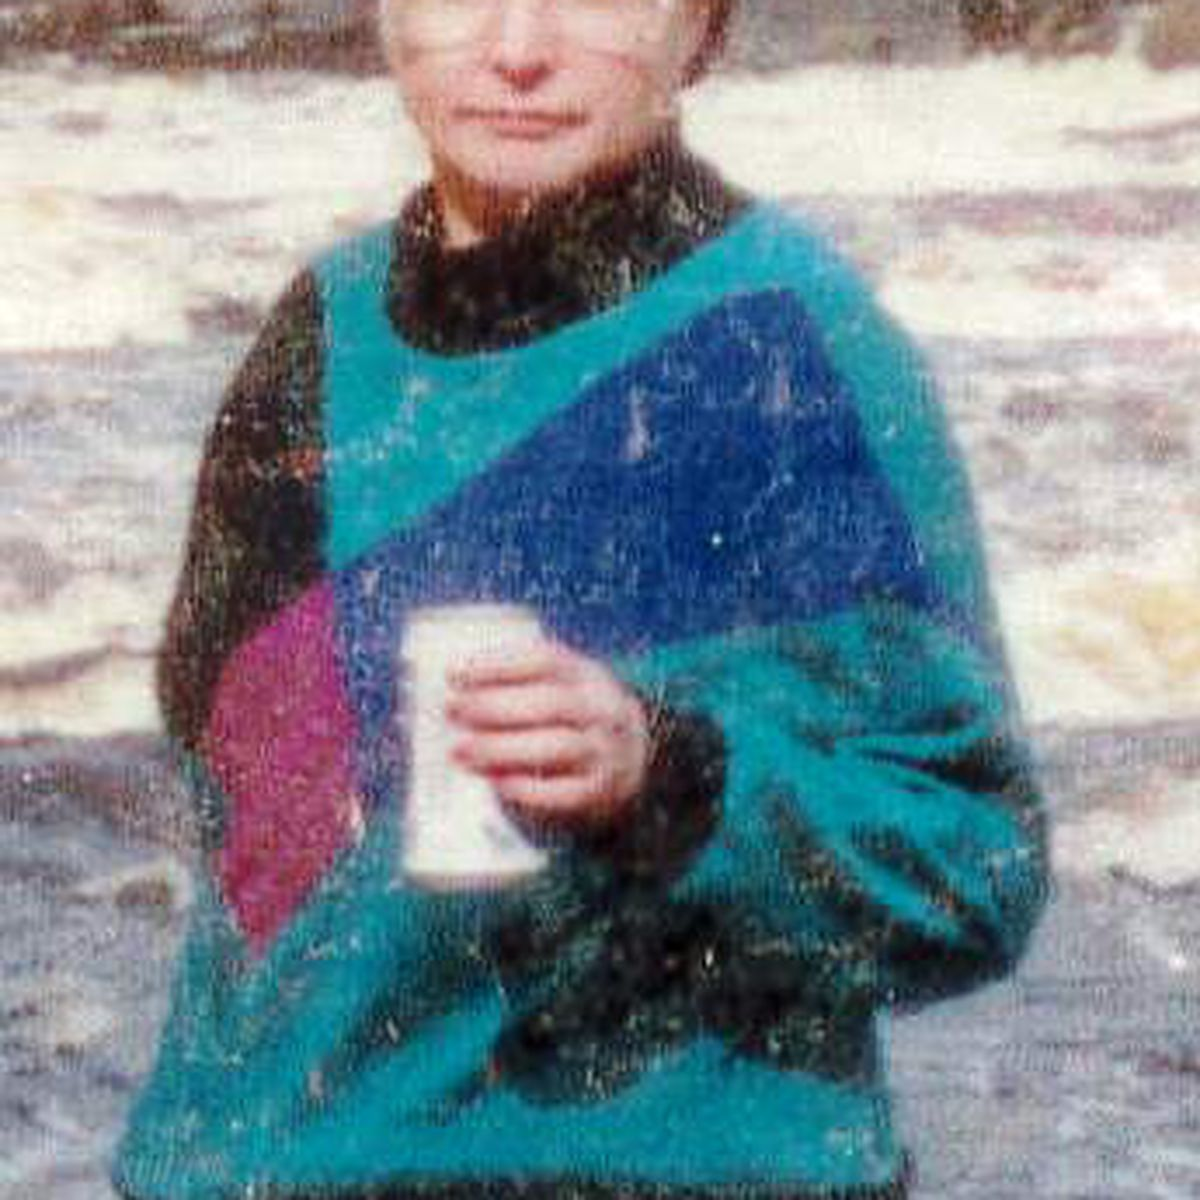 Sandra J. Dudley, 71, of Watertown